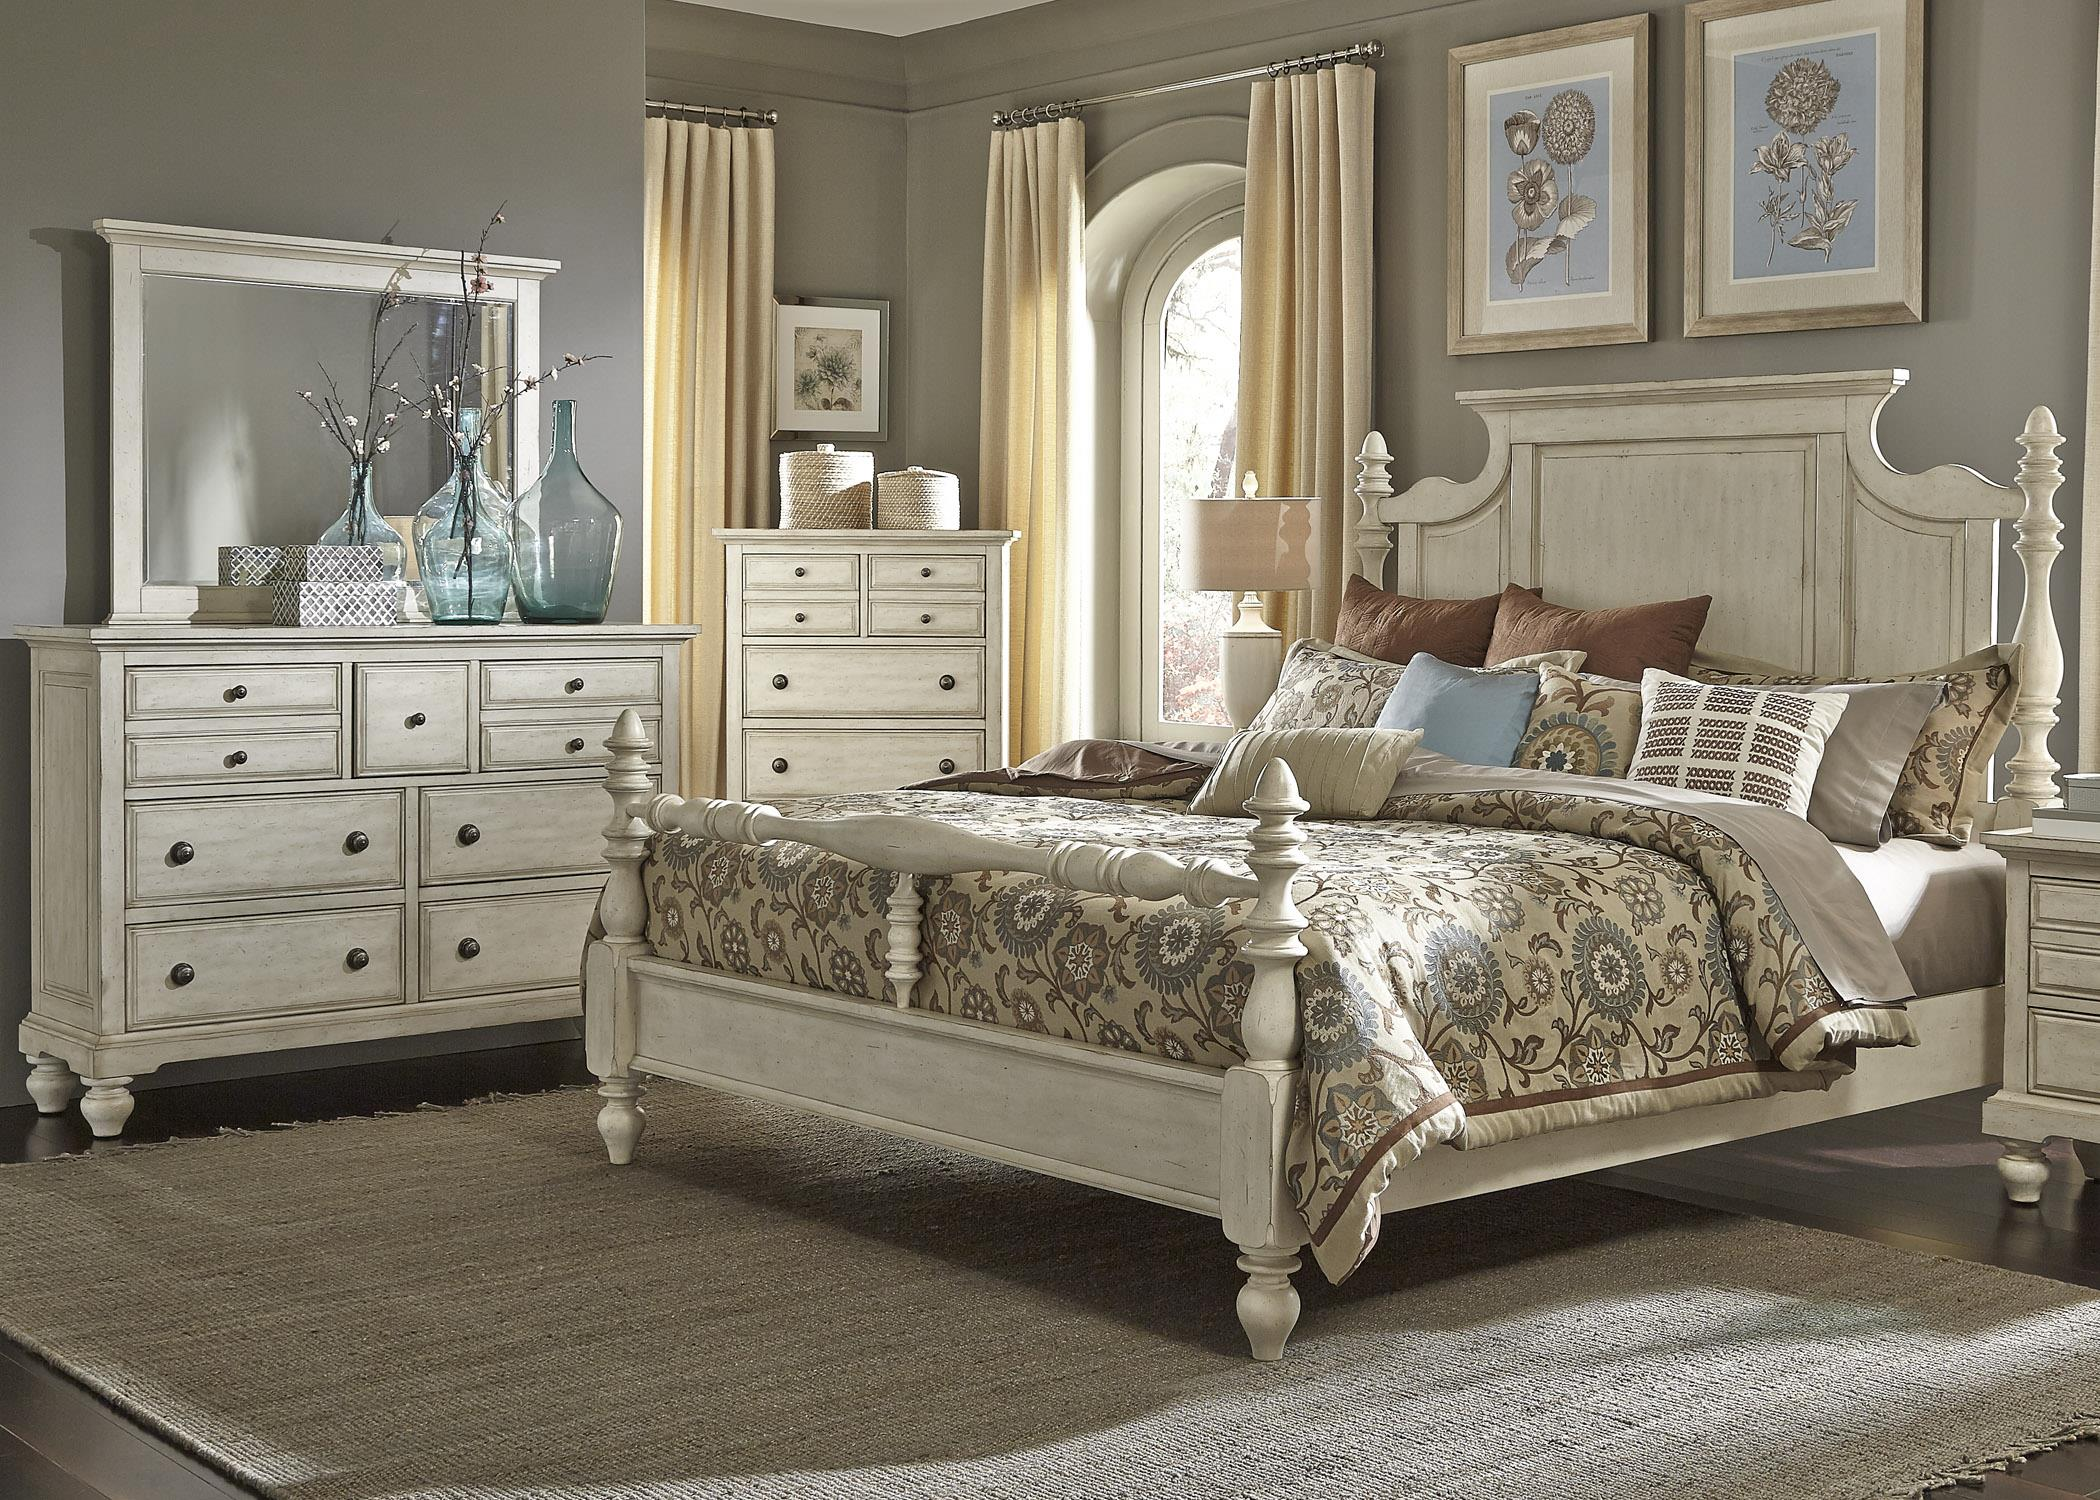 Liberty Furniture 697-BR King Bedroom Group - Item Number: 697-BR-KPSDMC